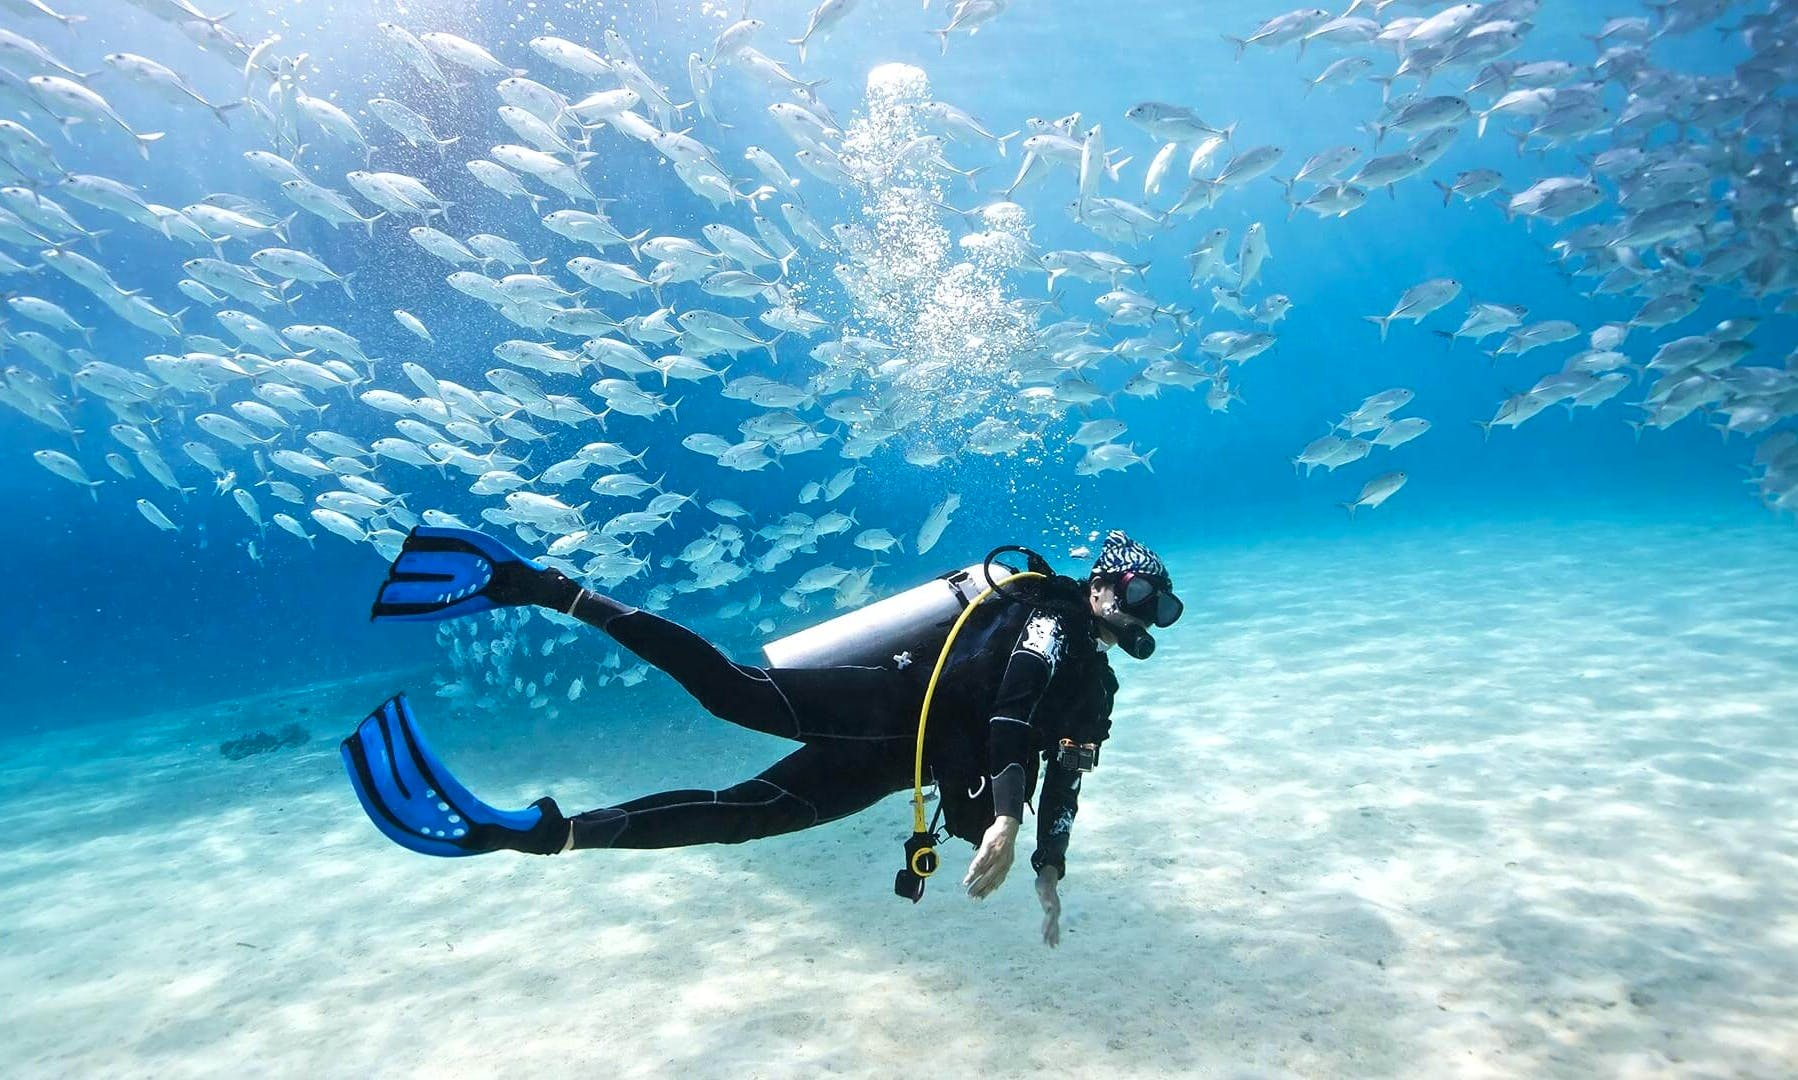 Enjoy Diving Lessons in Lochau, Austria